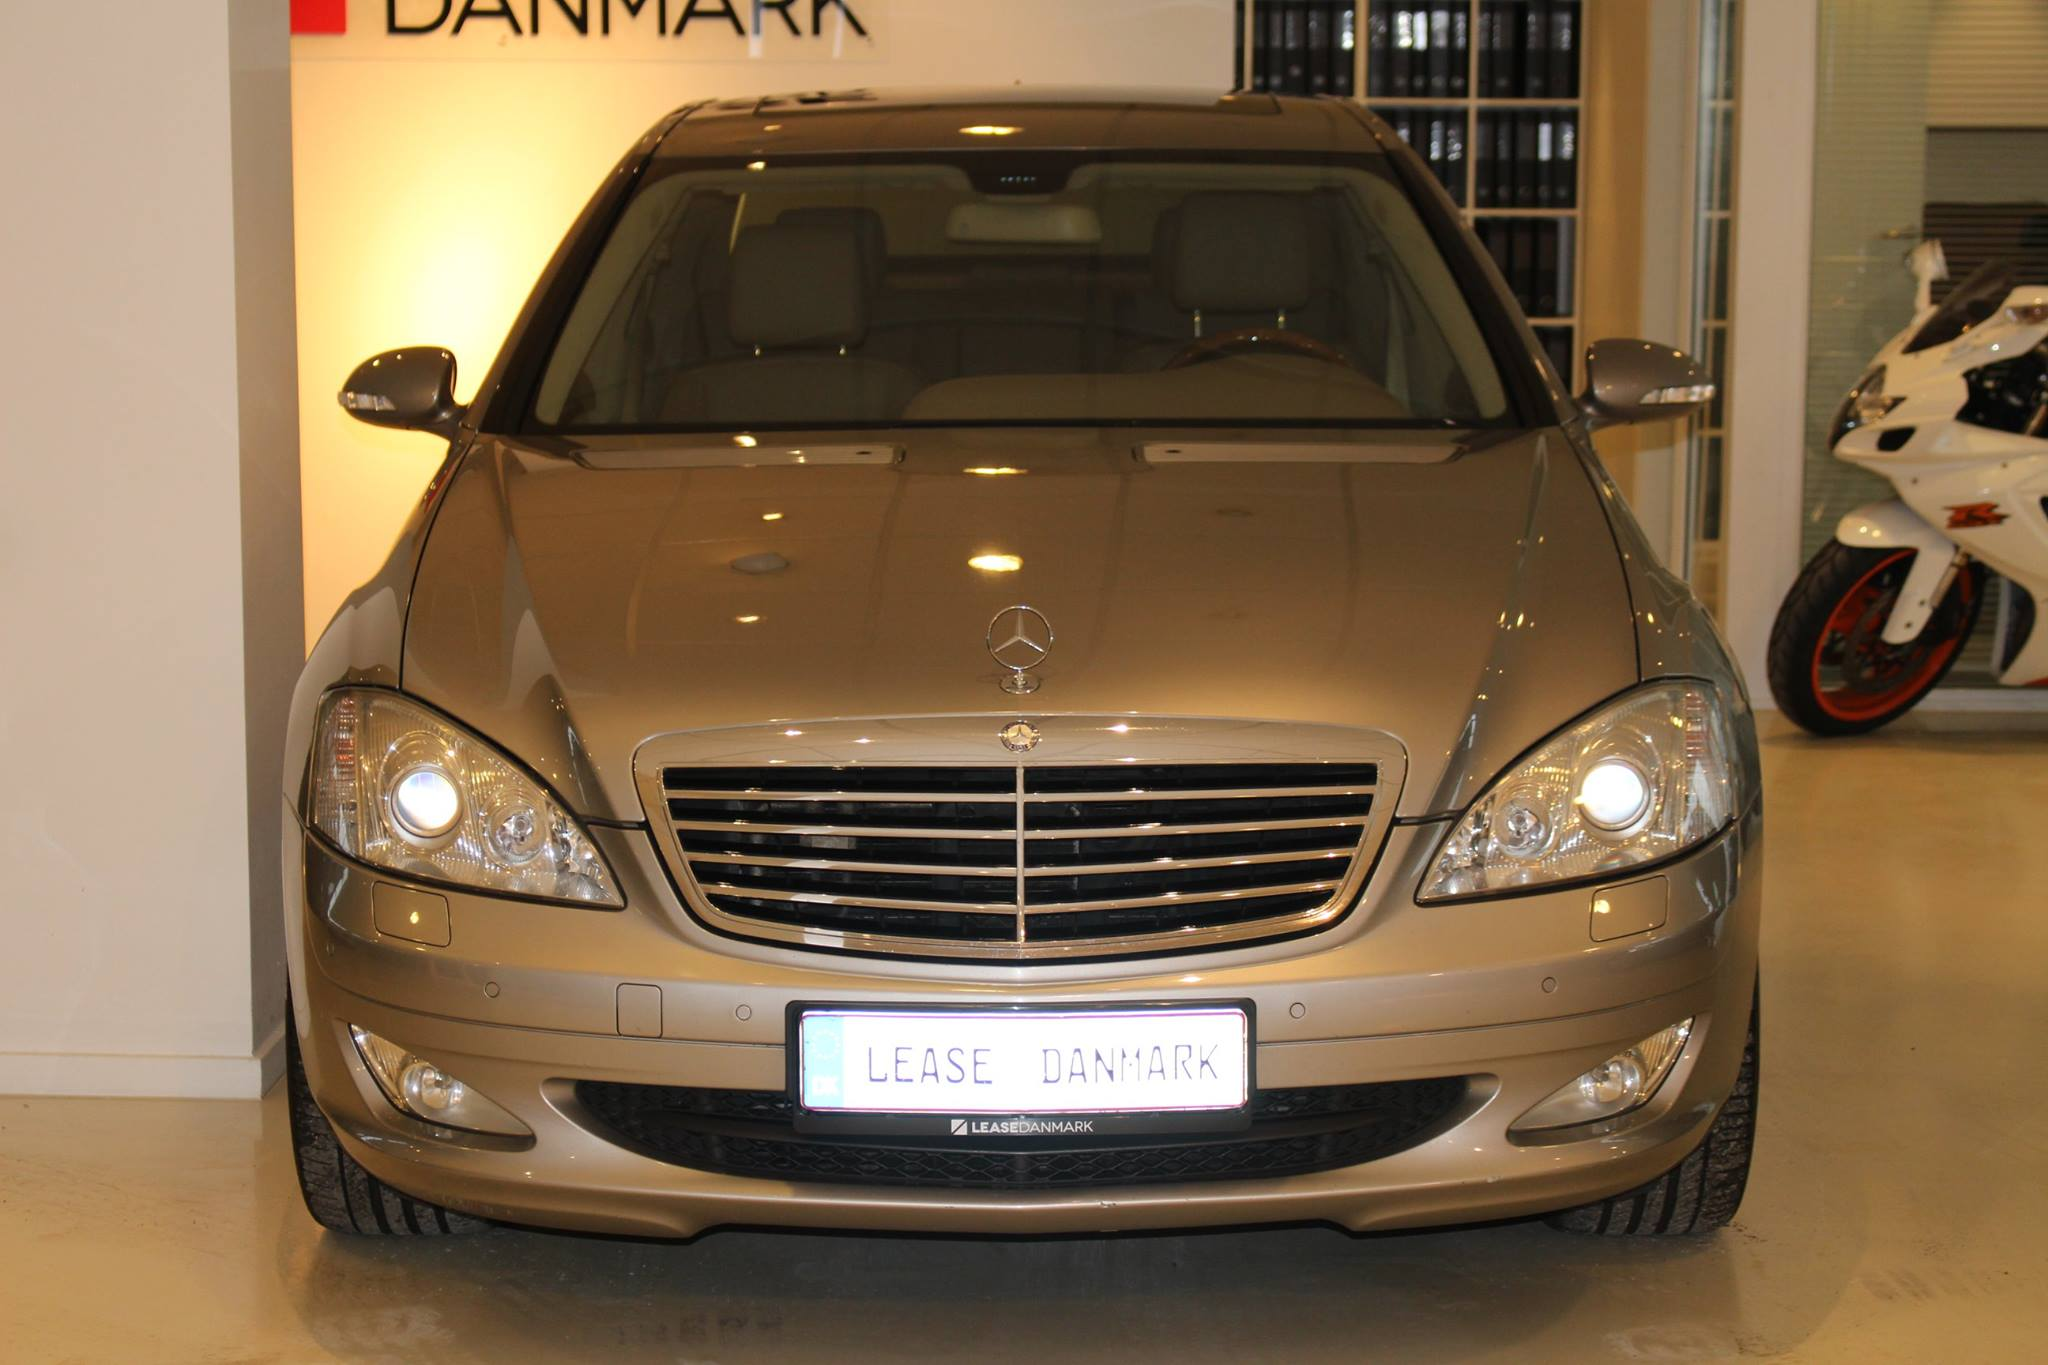 Mercedes benz s320 cdi lease danmark for Mercedes benz leasing company address